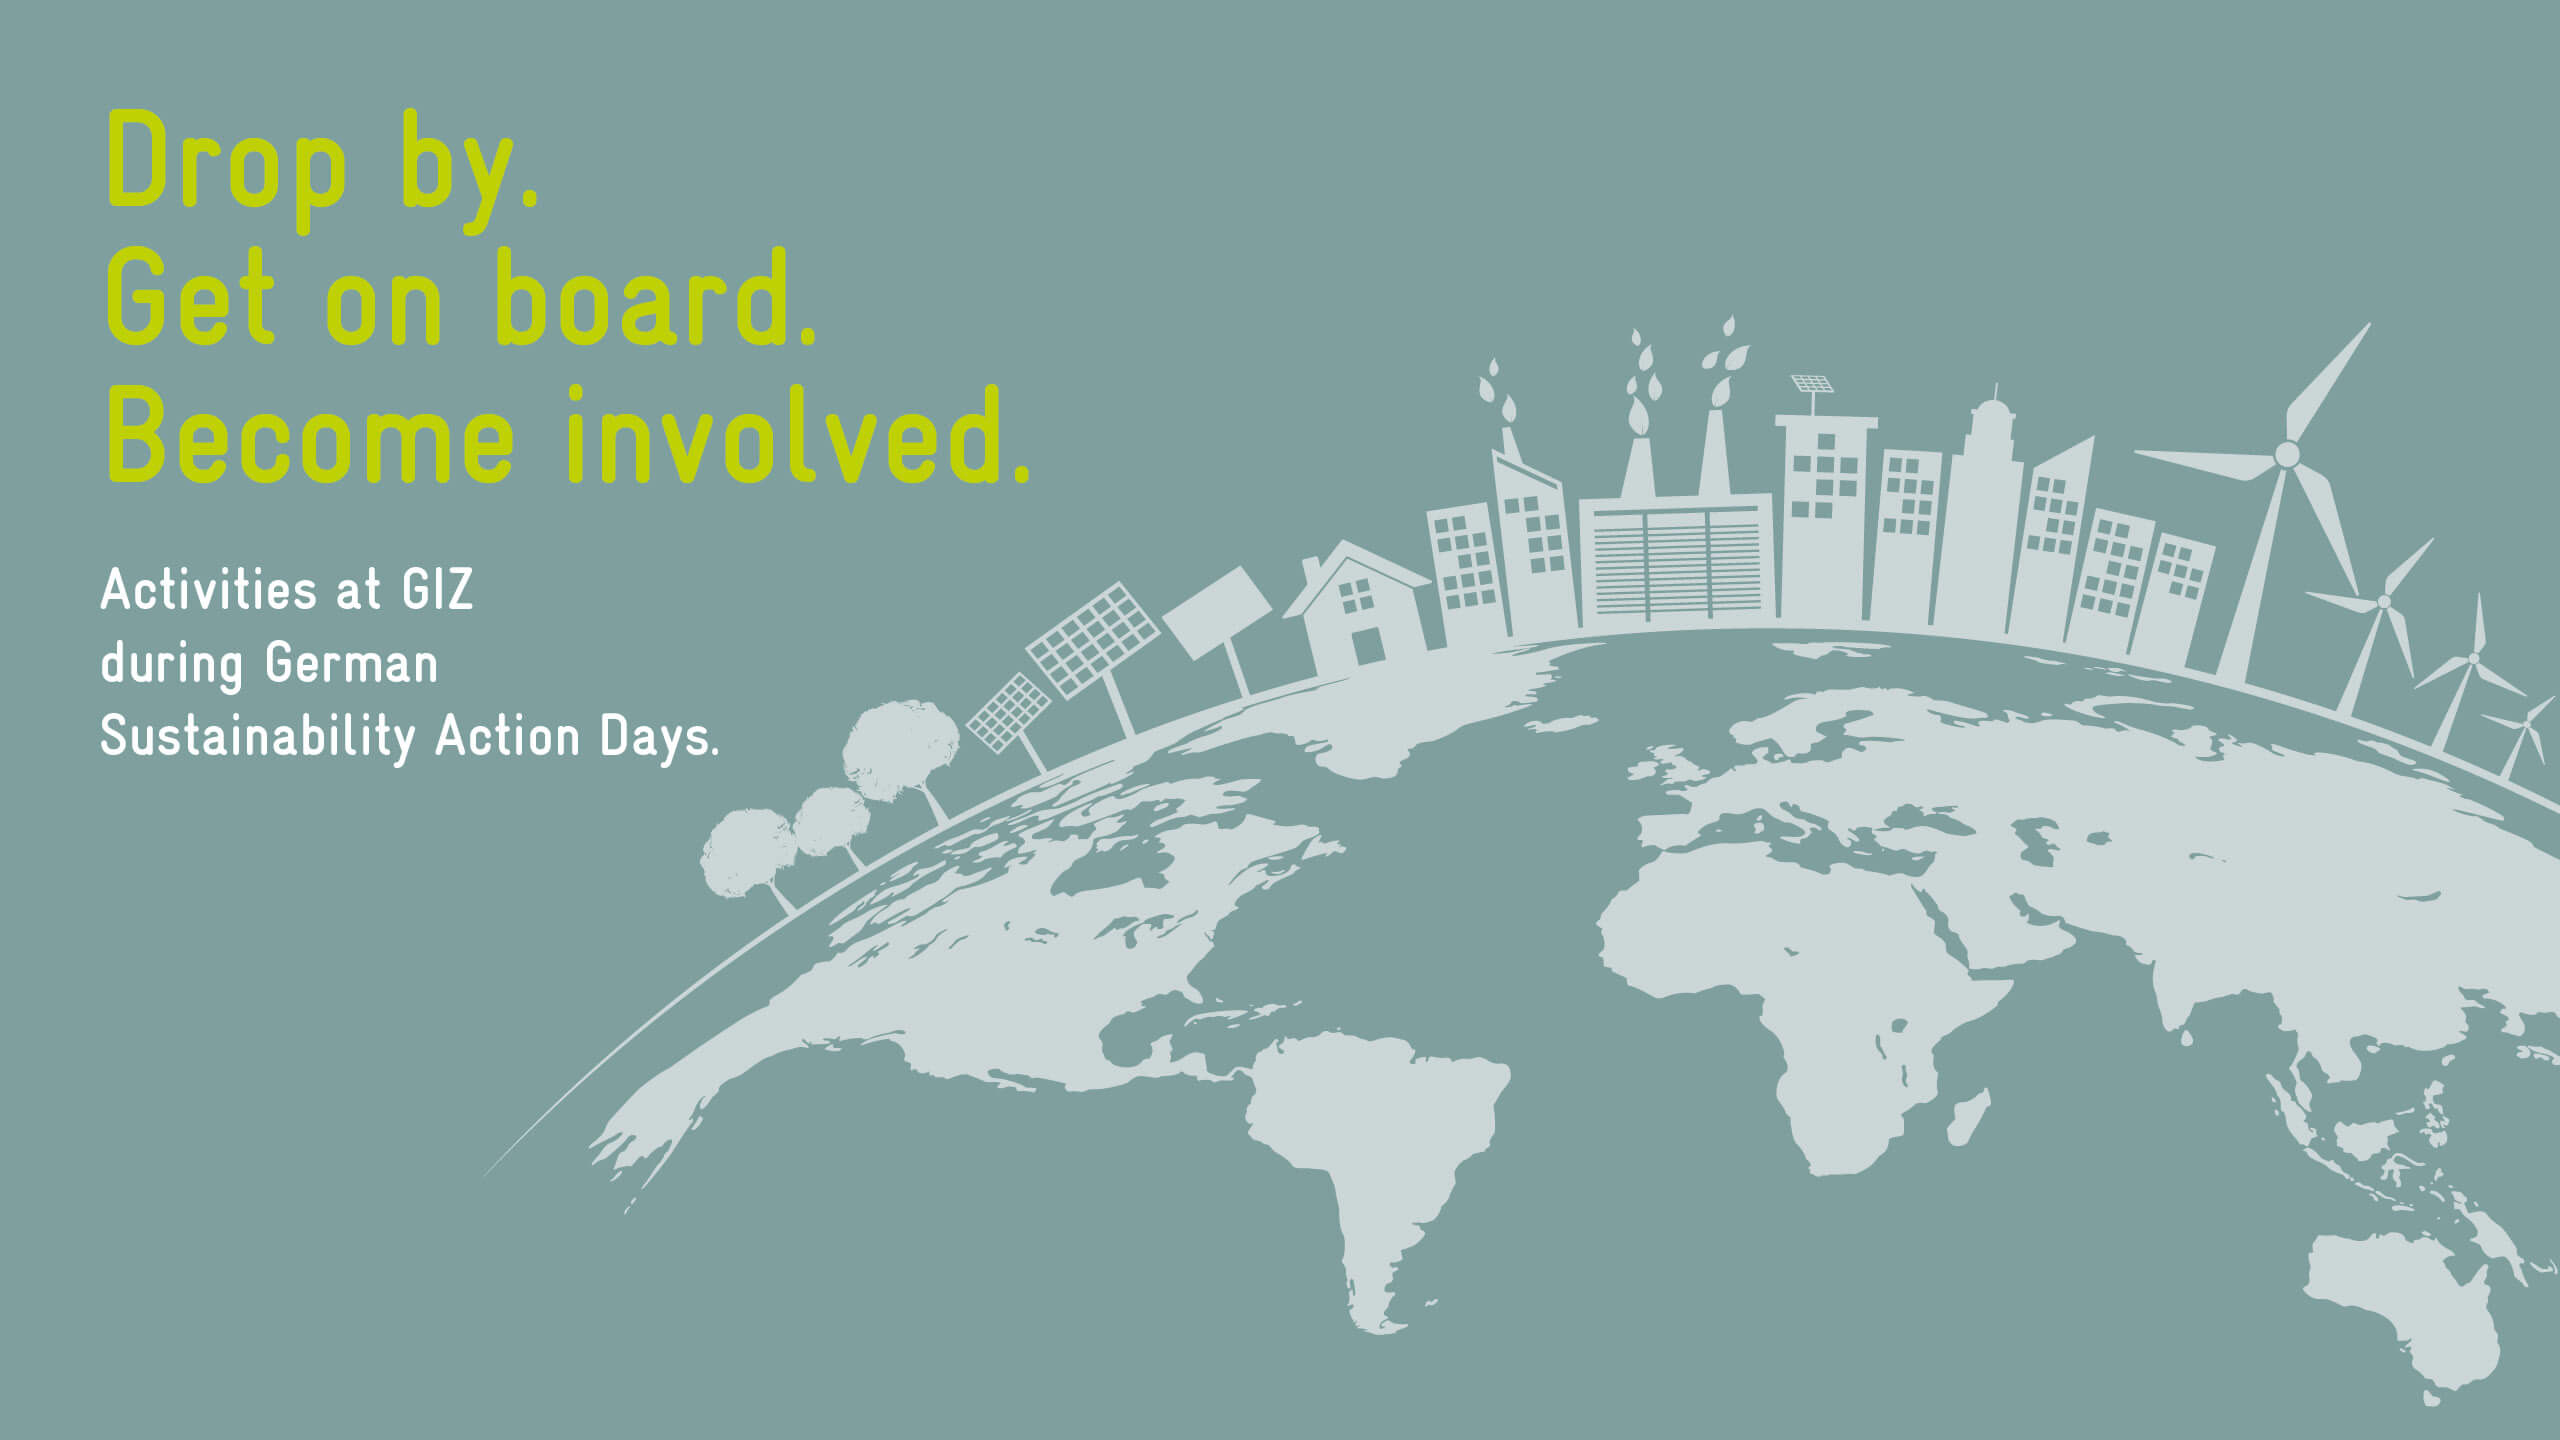 Drop by. Get on board. Become involved. Activities at GIZ during German Sustainibility Action Days.